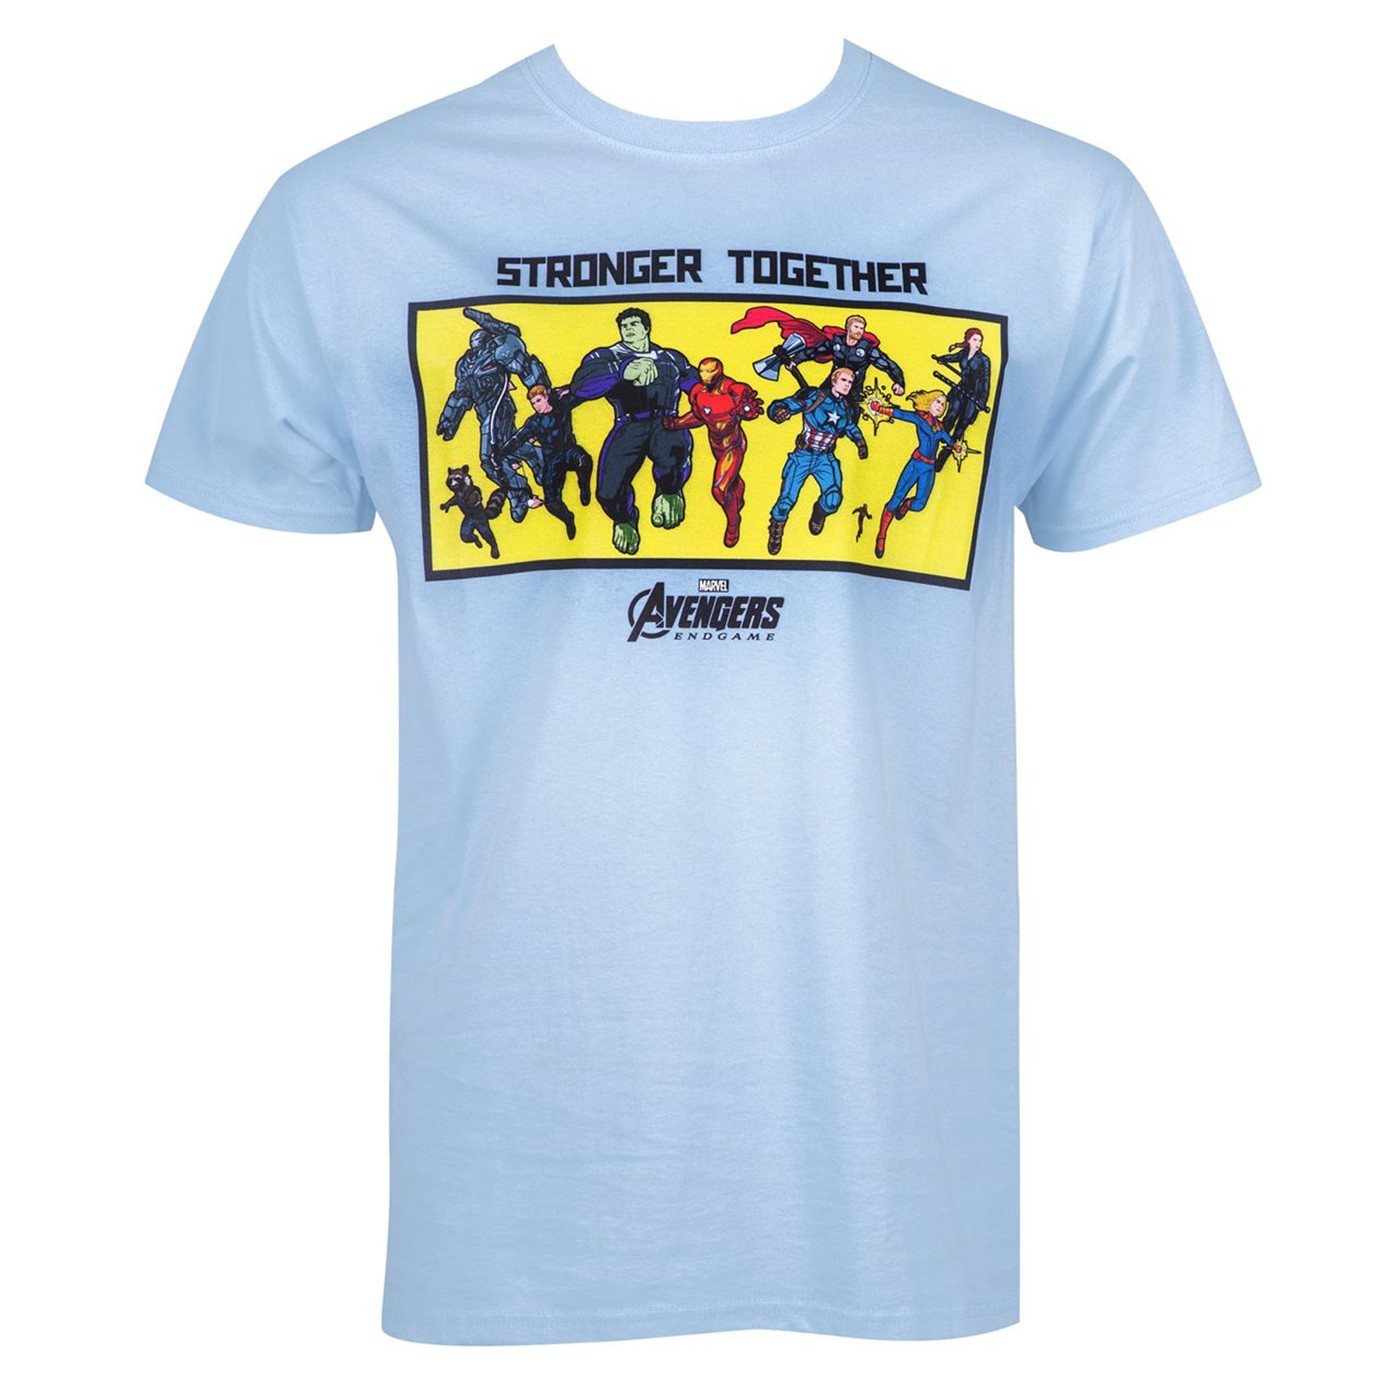 Avengers Endgame Stronger Together Lineup Men's T-Shirt